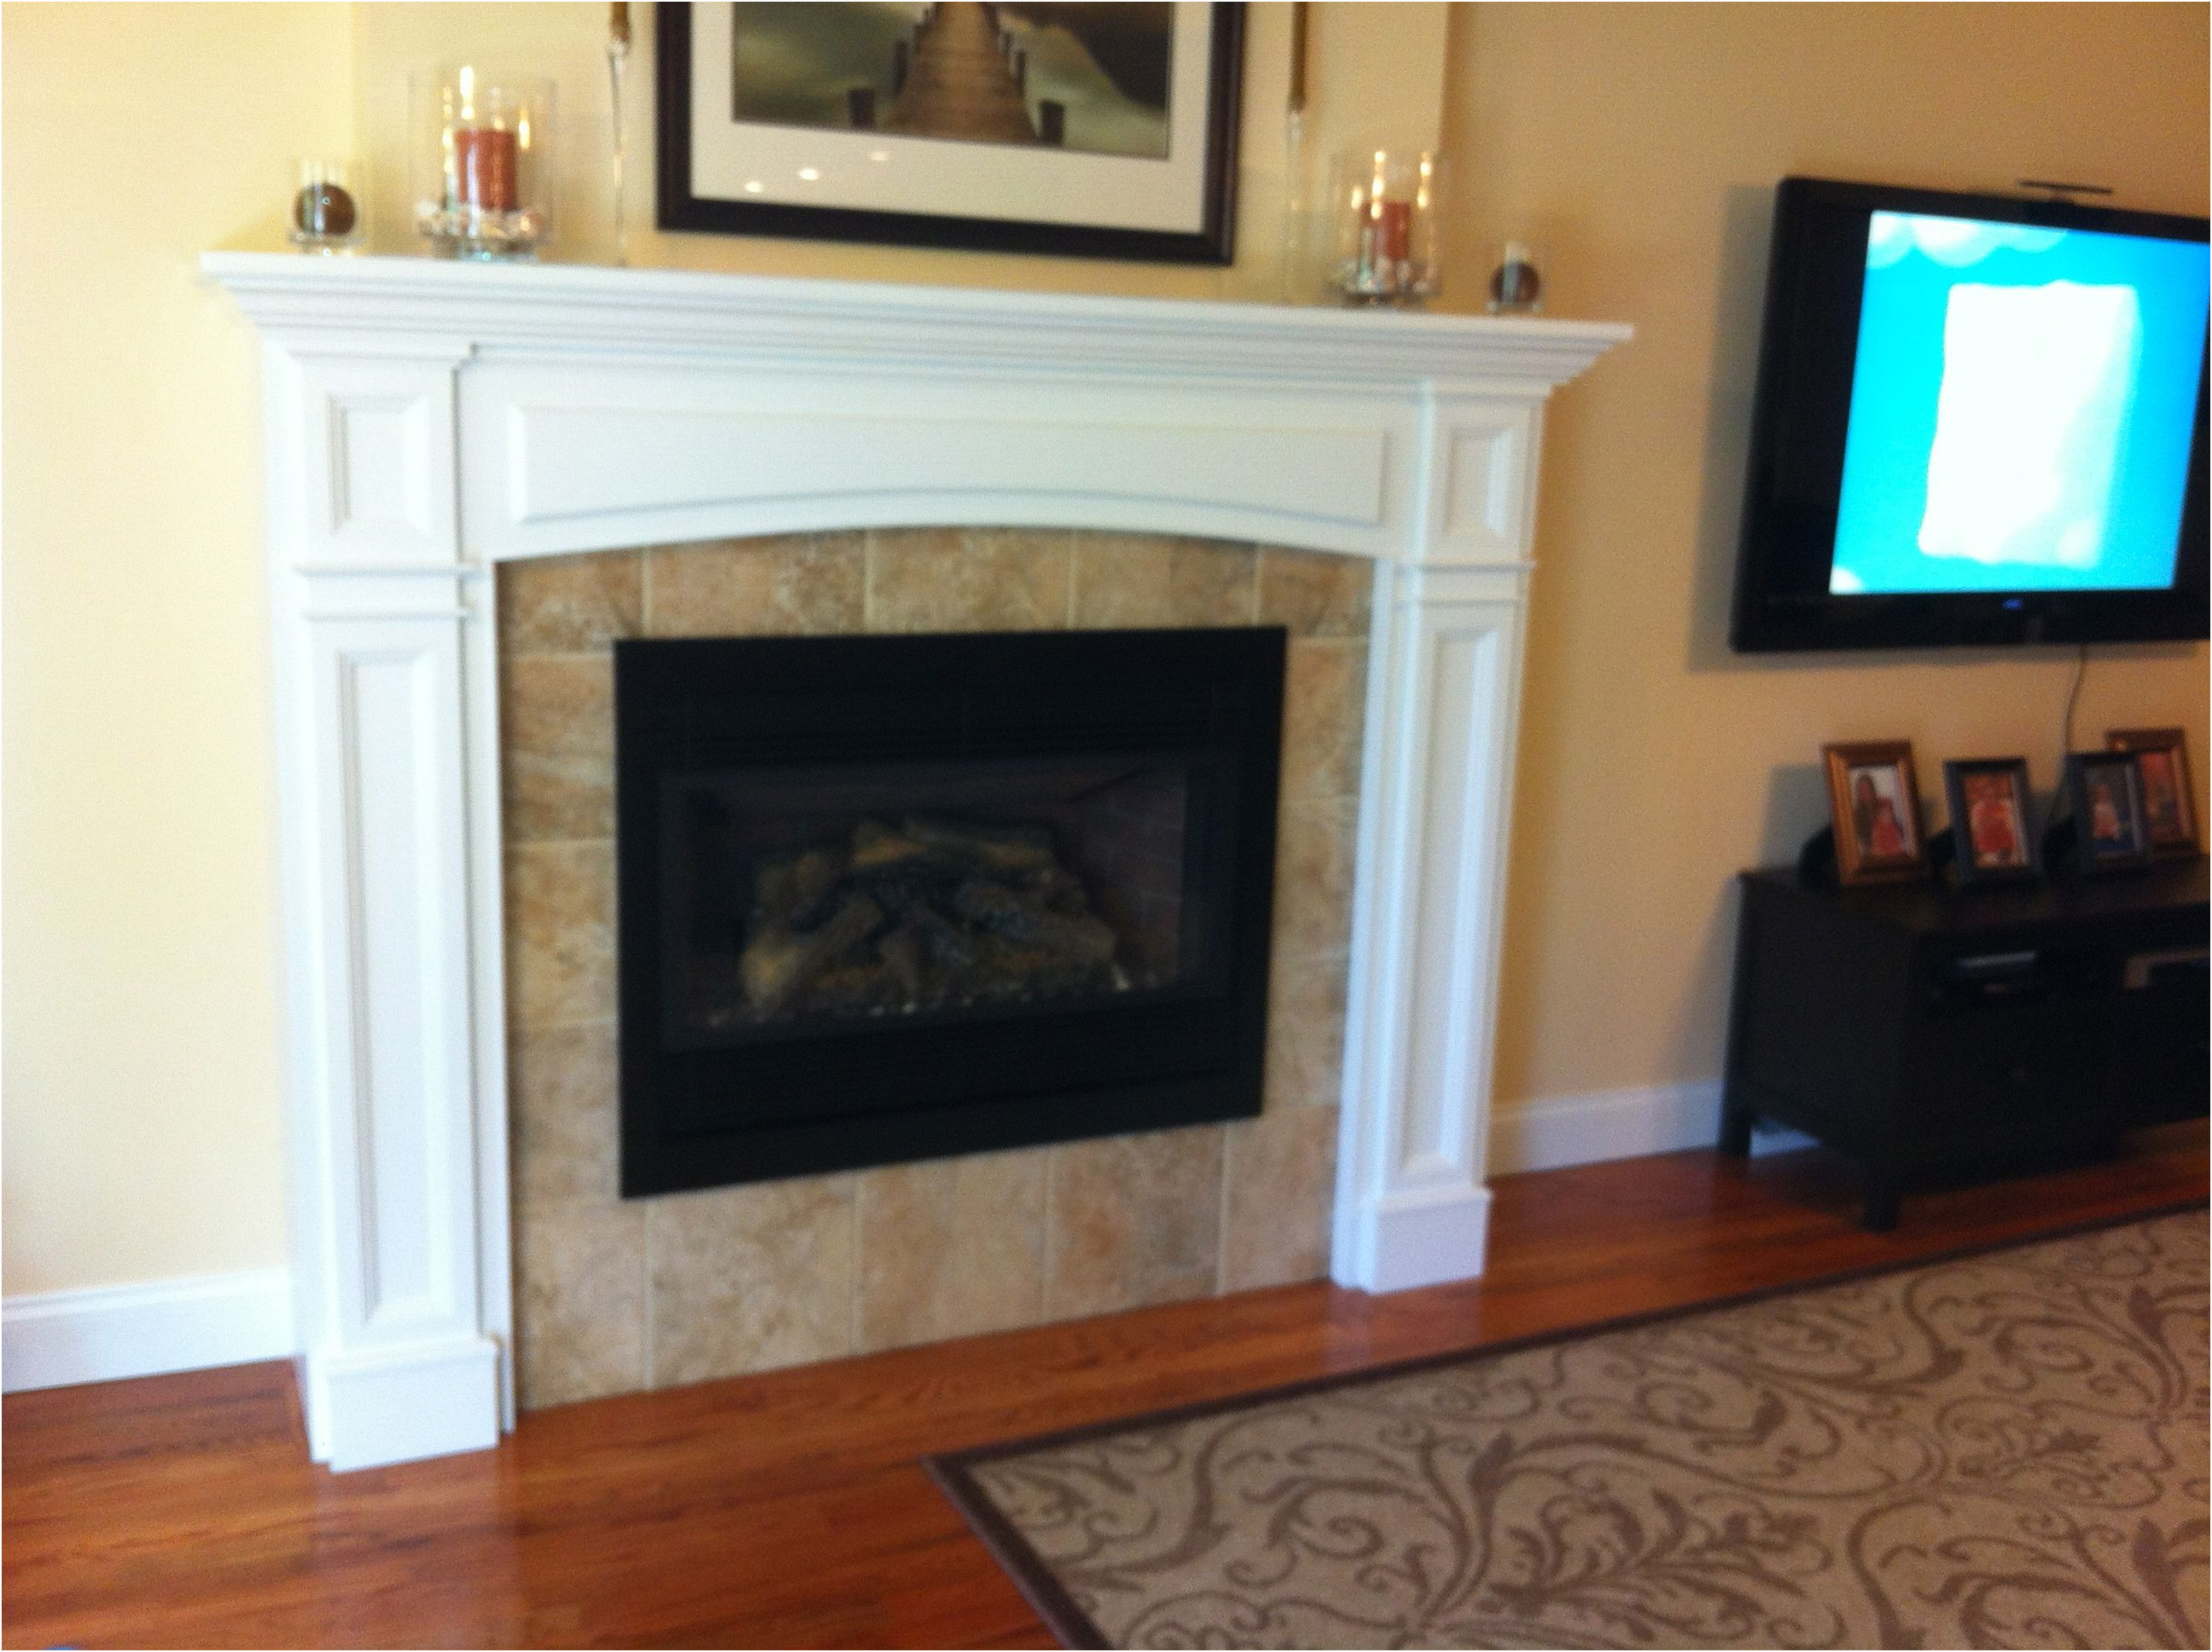 Gas Fireplace Surround Ideas Best Of Gas Fireplace Insert Tile Face Of Fireplace No Hearth Fluted